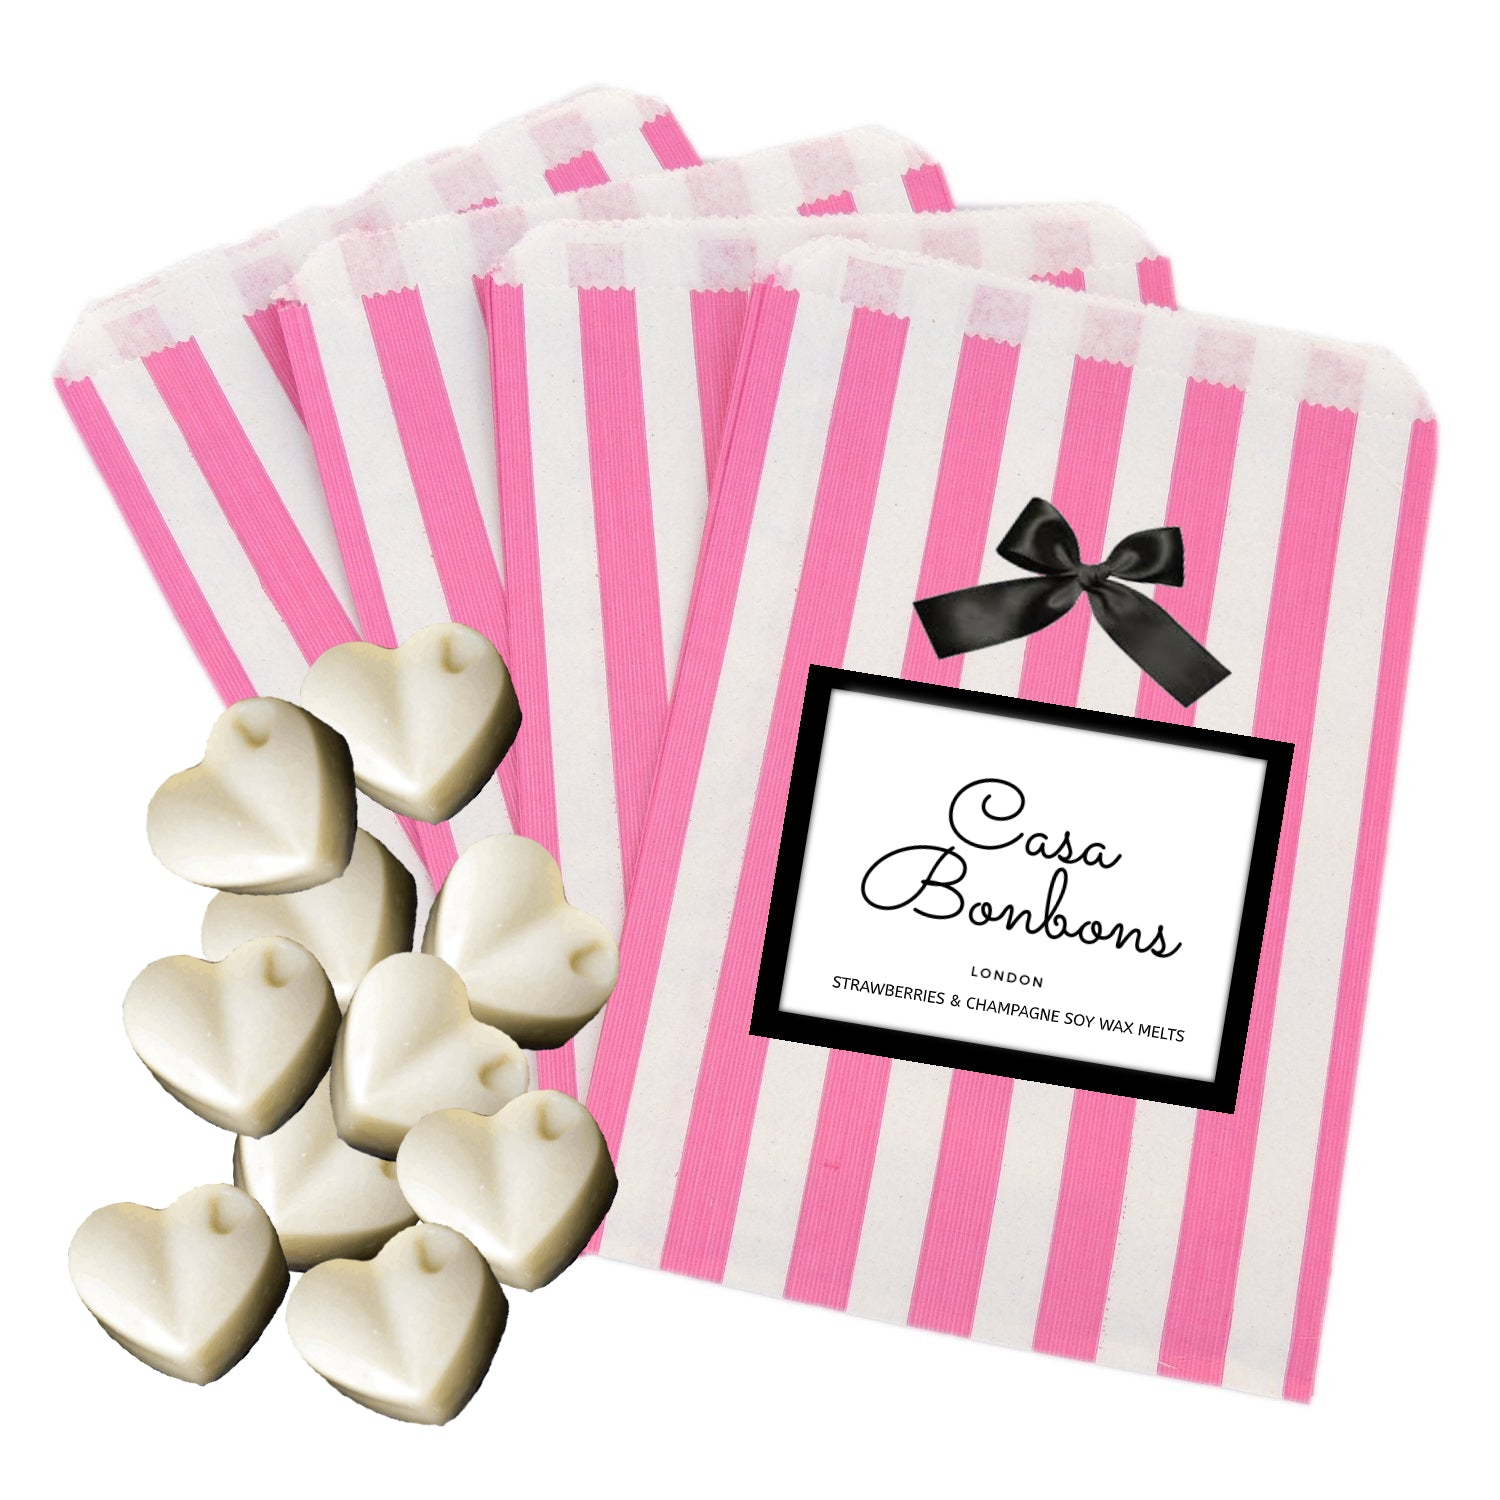 Strawberry & Champagne gentle scented Soy Wax Melts (10 hearts) - natoorio